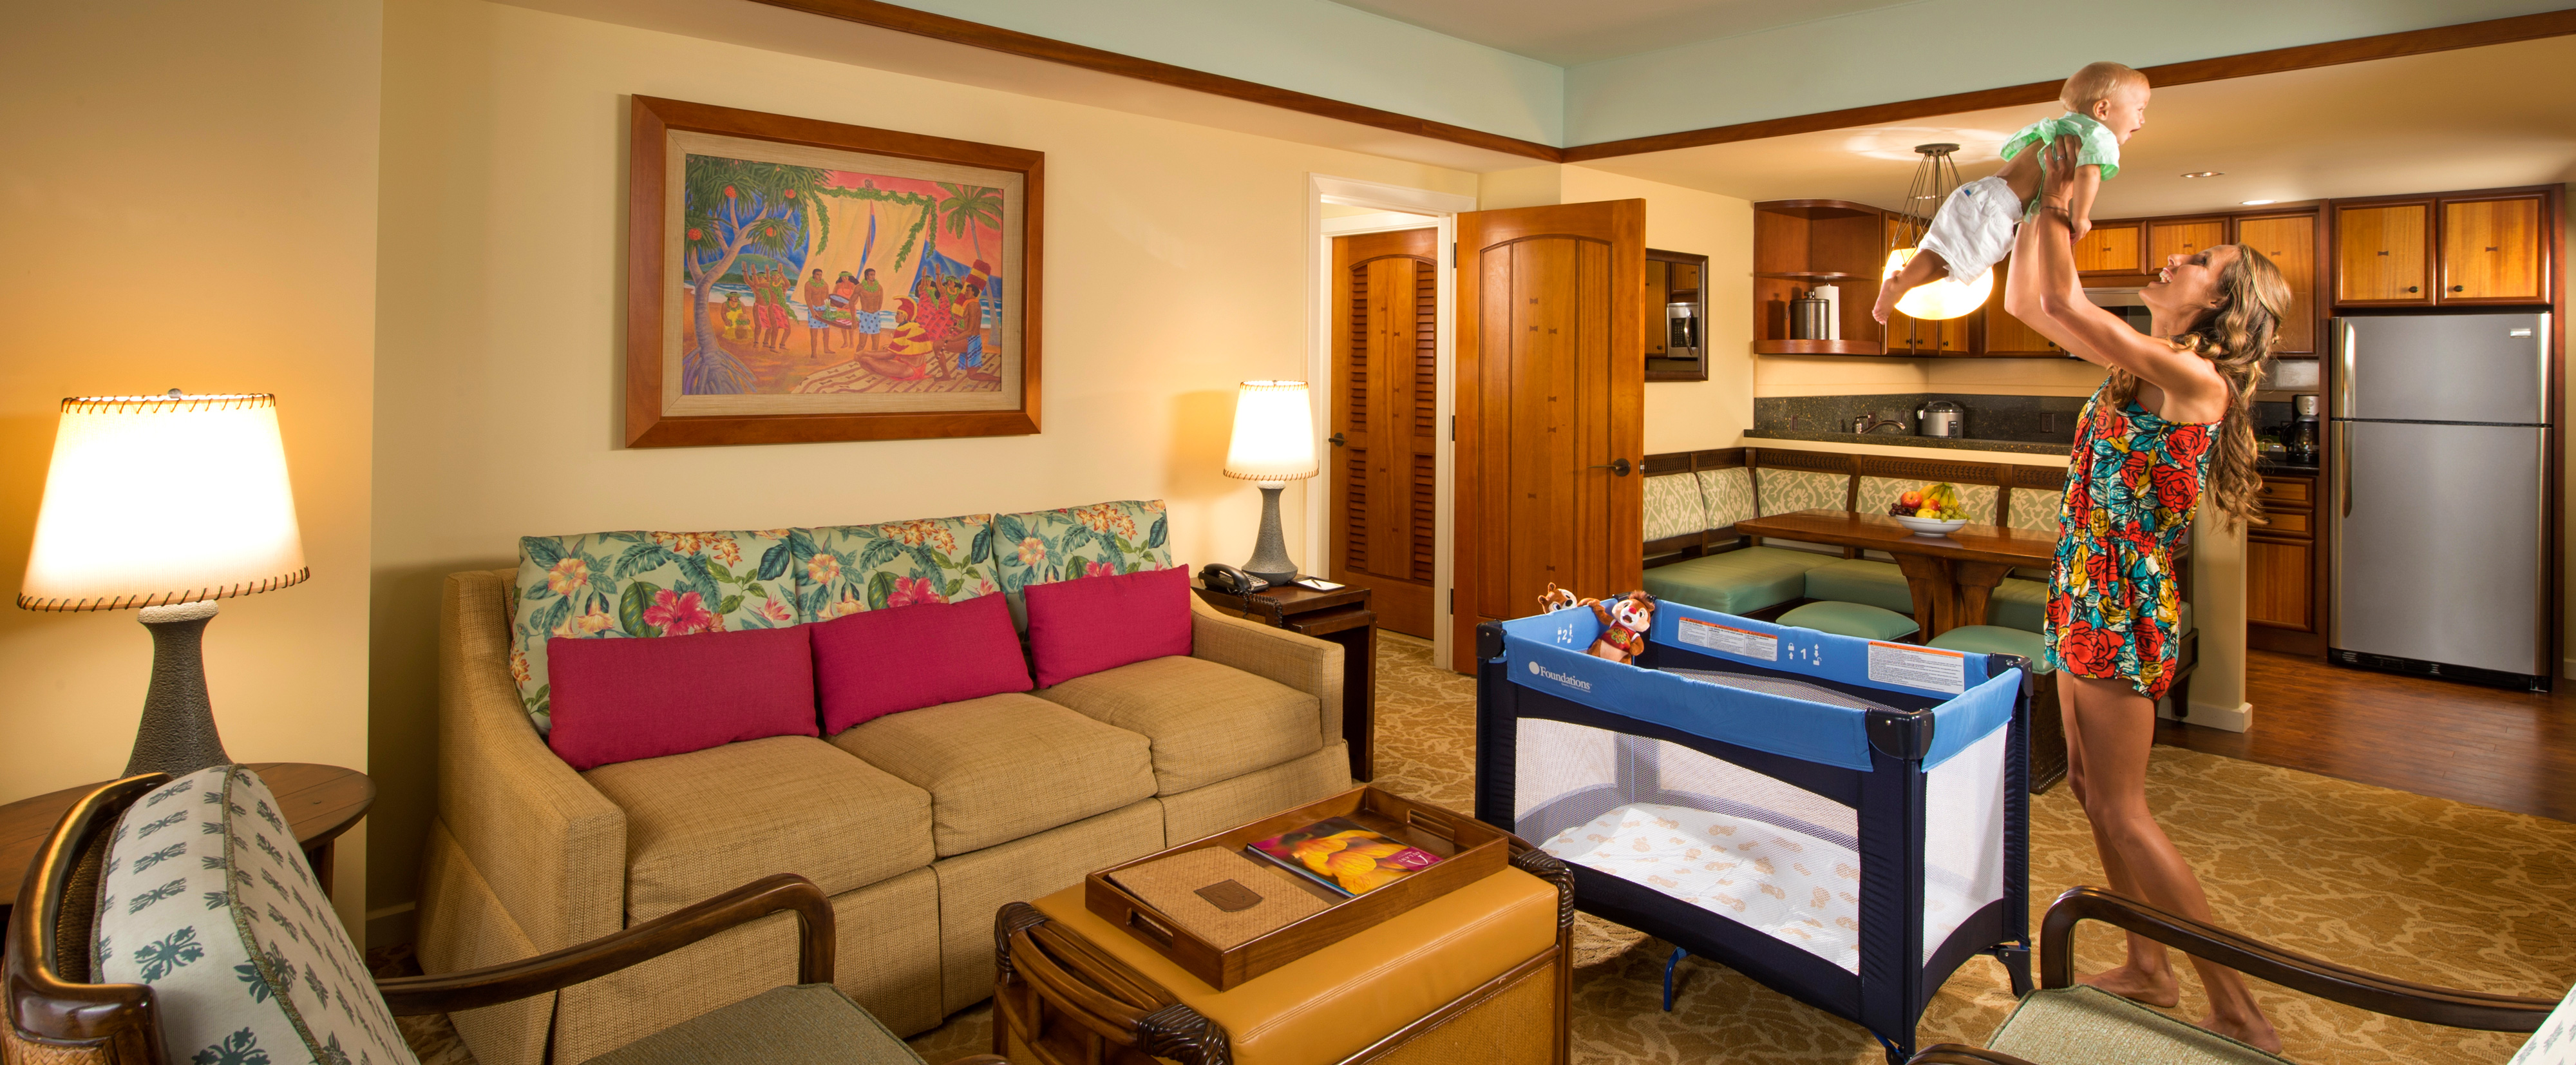 Two Bedroom Villa | Aulani Hawaii Resort & Spa